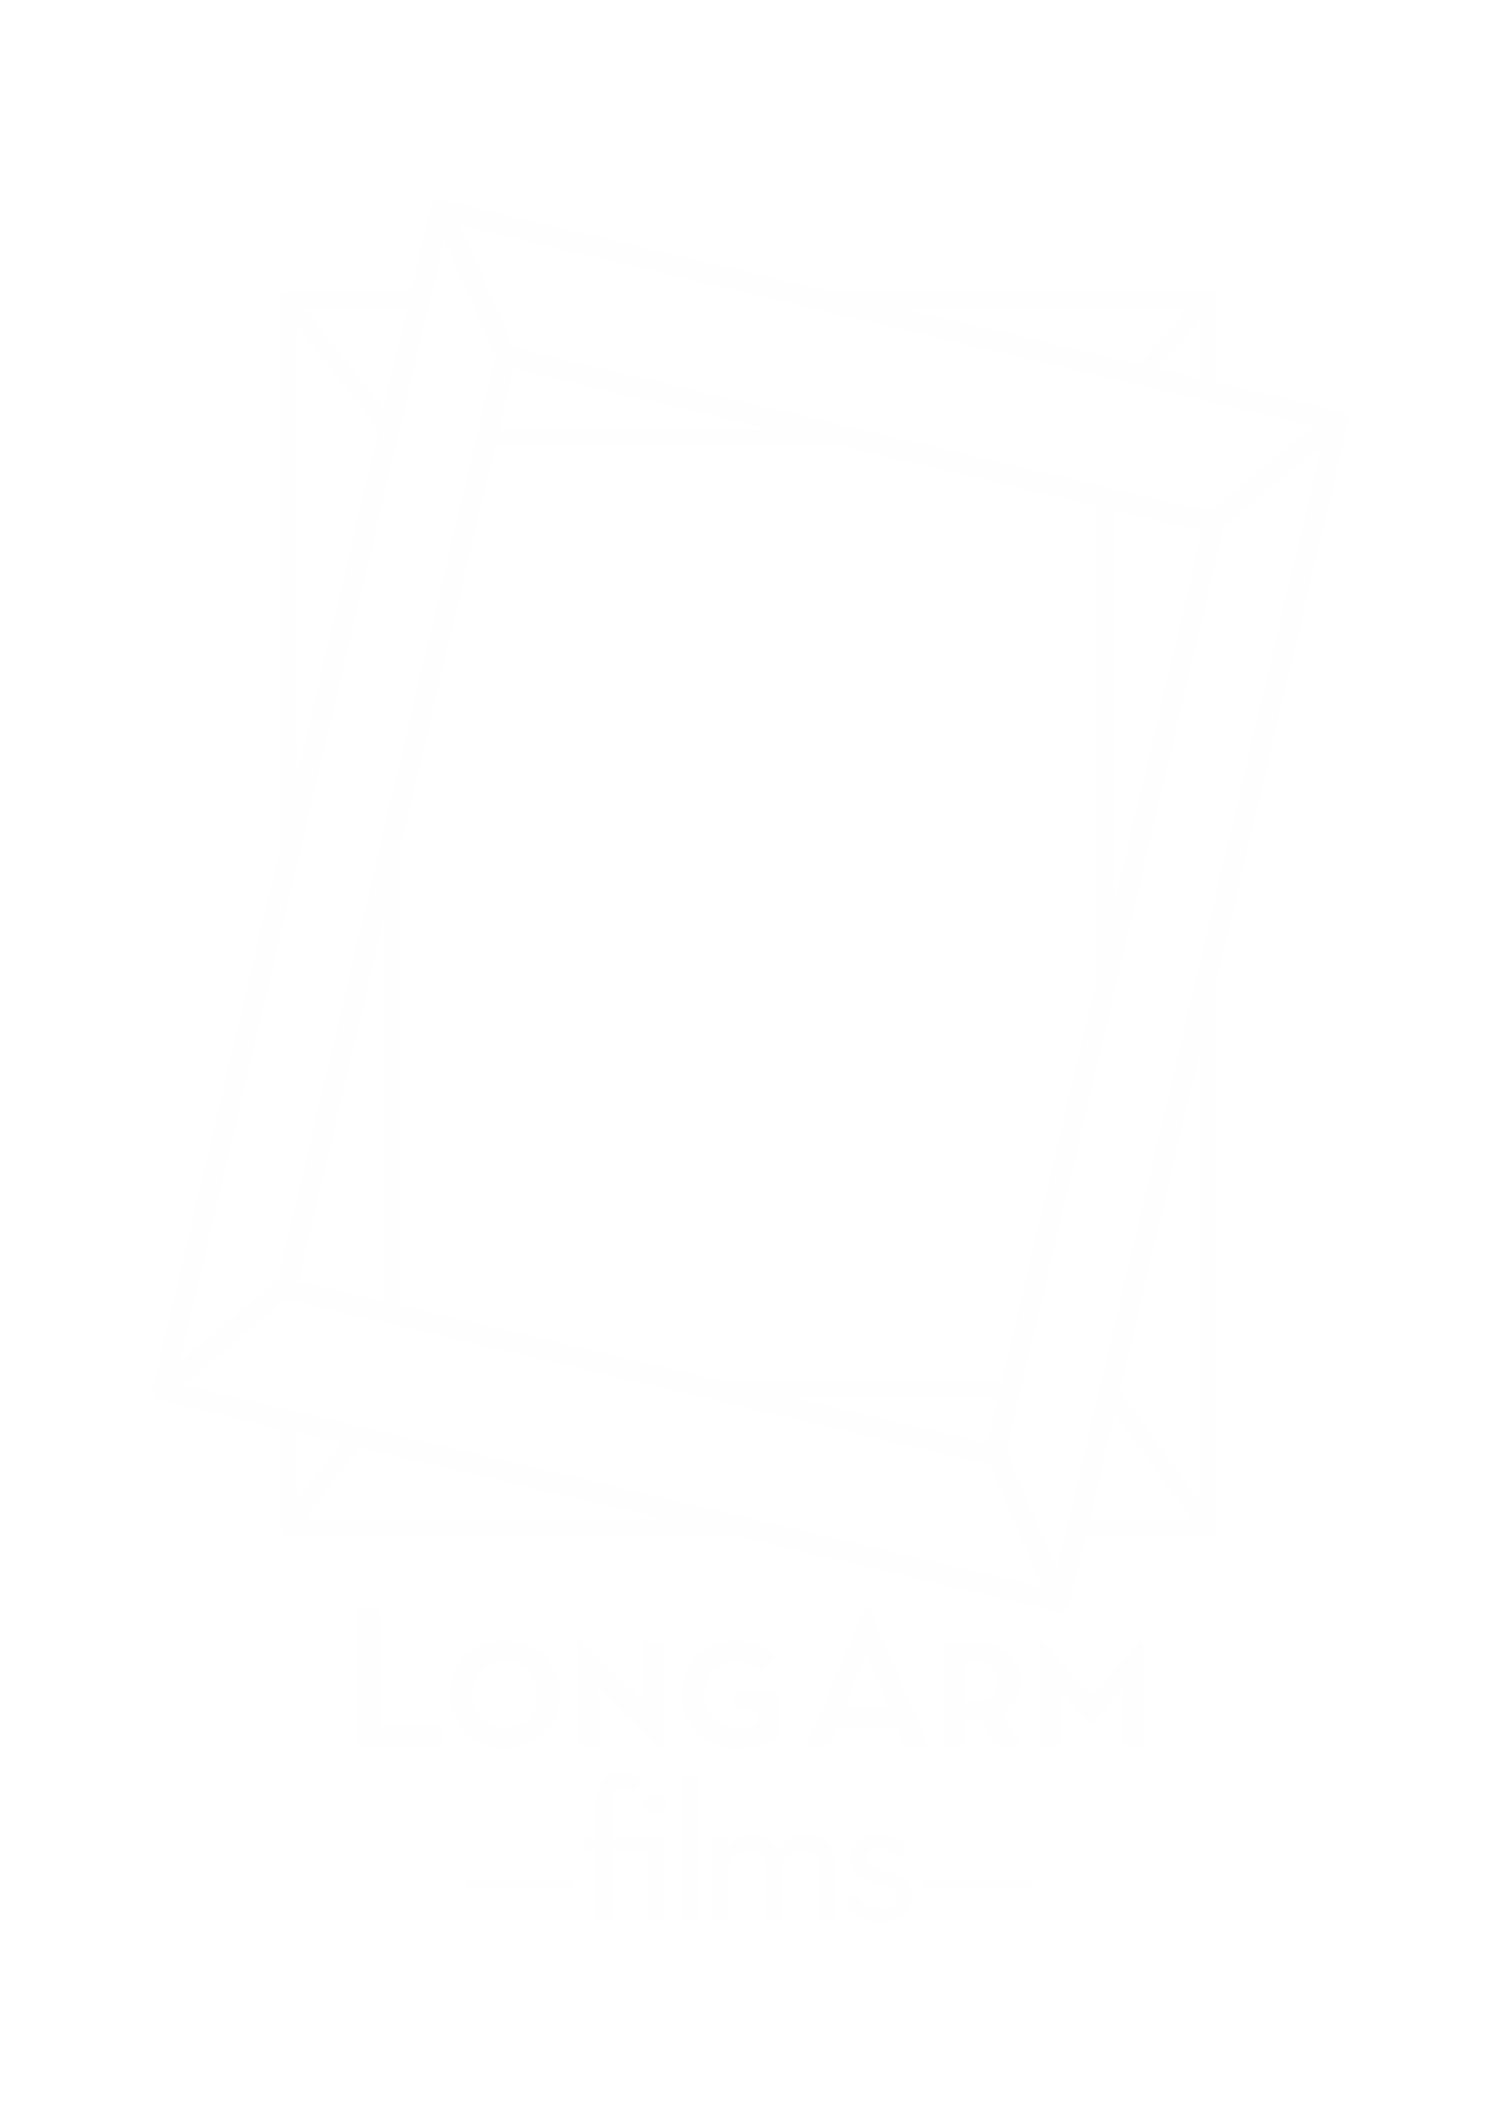 Long Arm Films